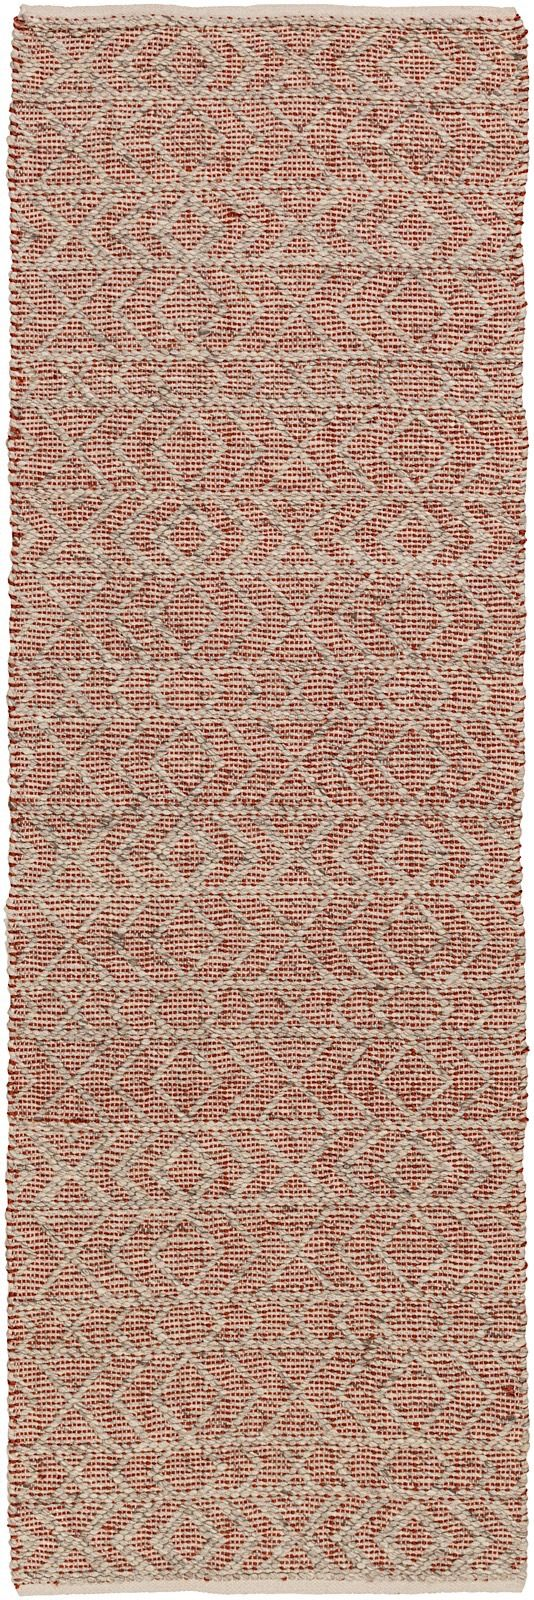 surya ingrid contemporary area rug collection